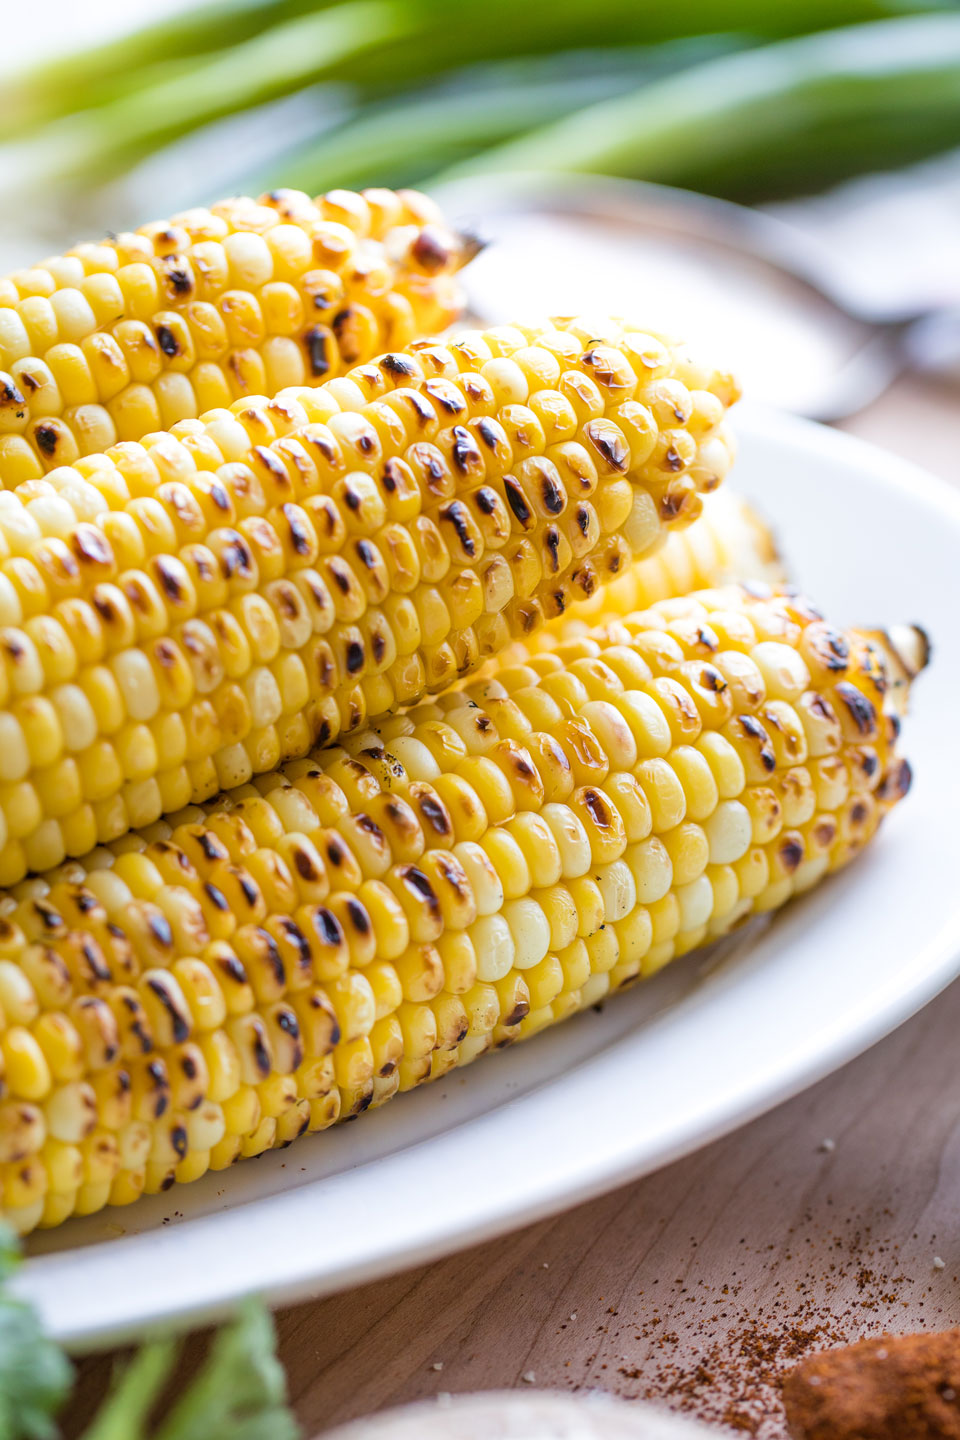 5 ears of grilled corn on the cob on a white platter, with pretty greens and spices nearby.